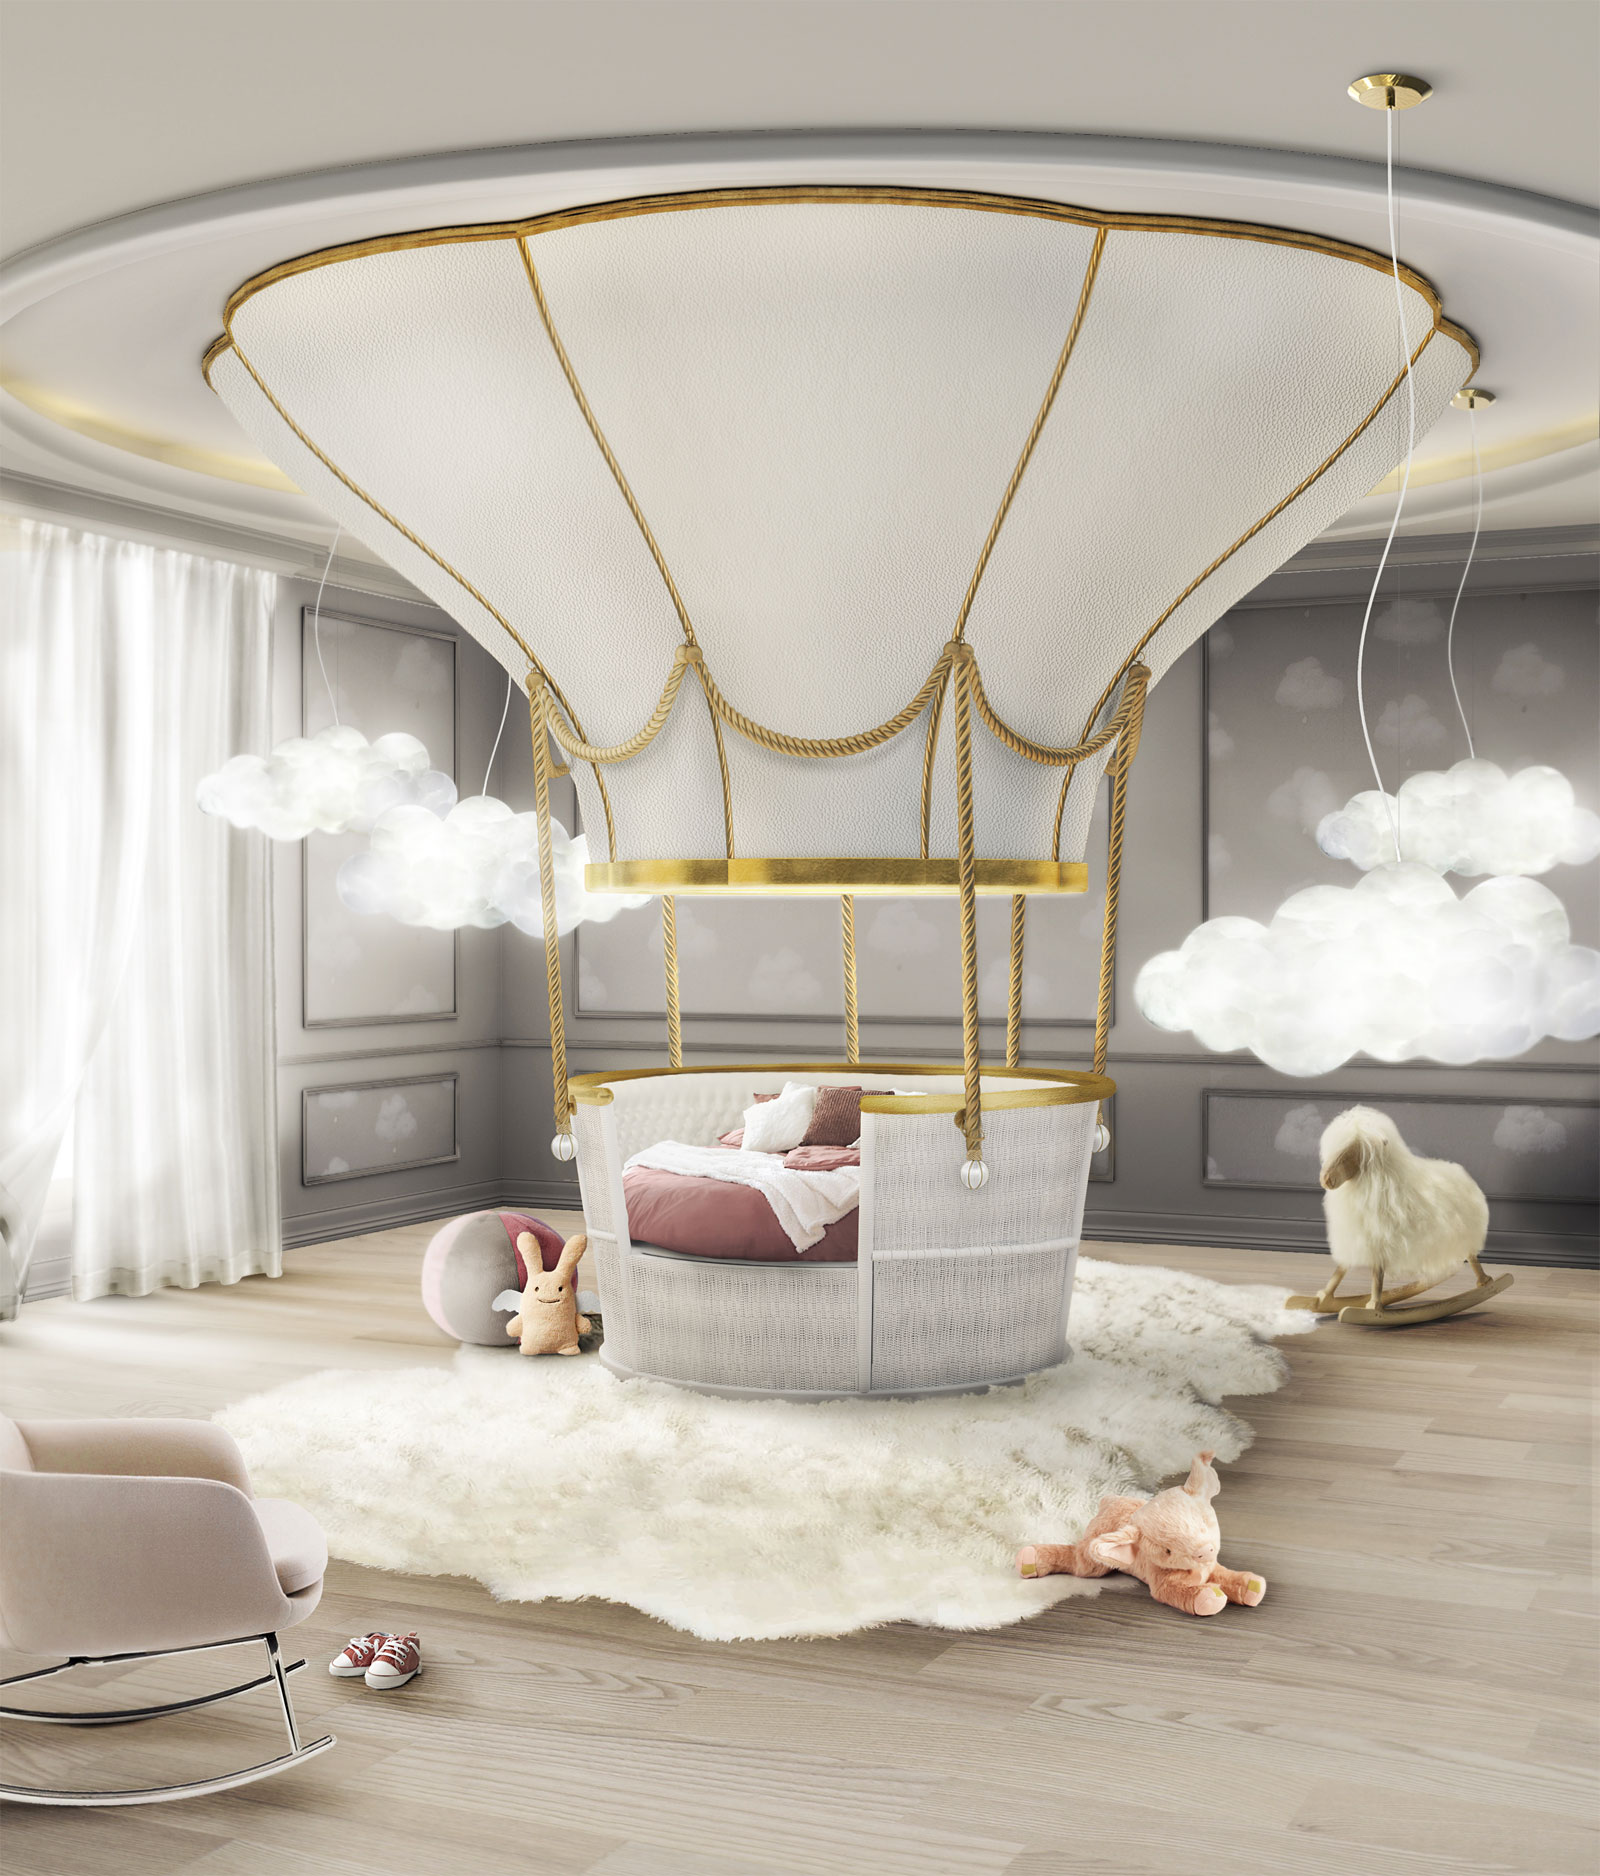 Cool Beds For Kids Three Amazing Beds For Children That Will Make Adults Jealous